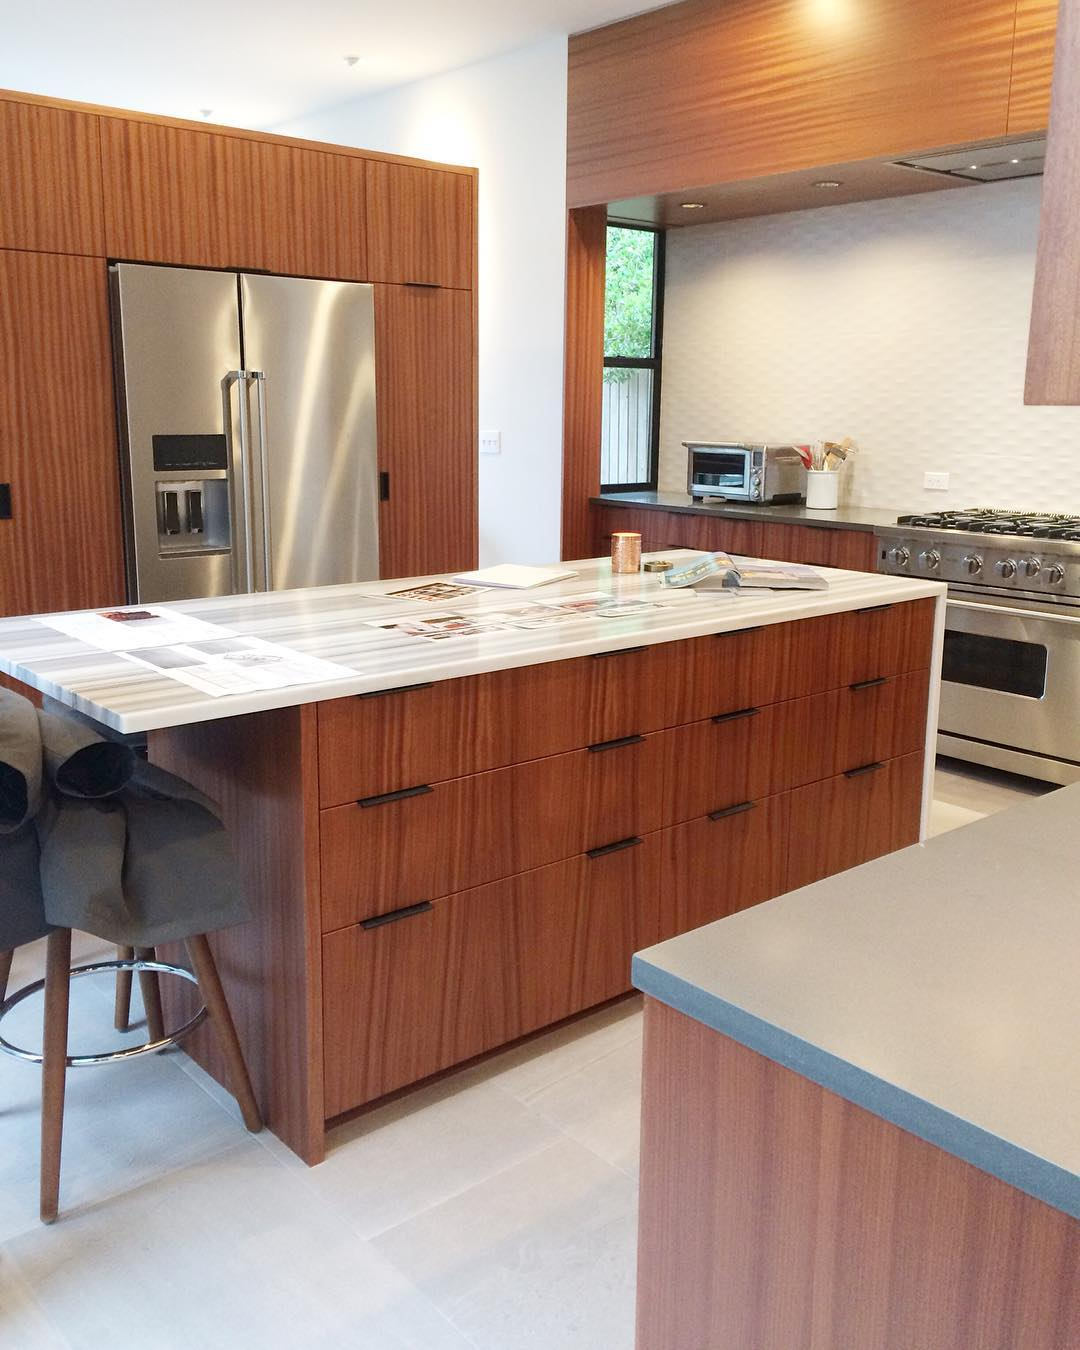 Modern Kitchen With Wooden Cabinets